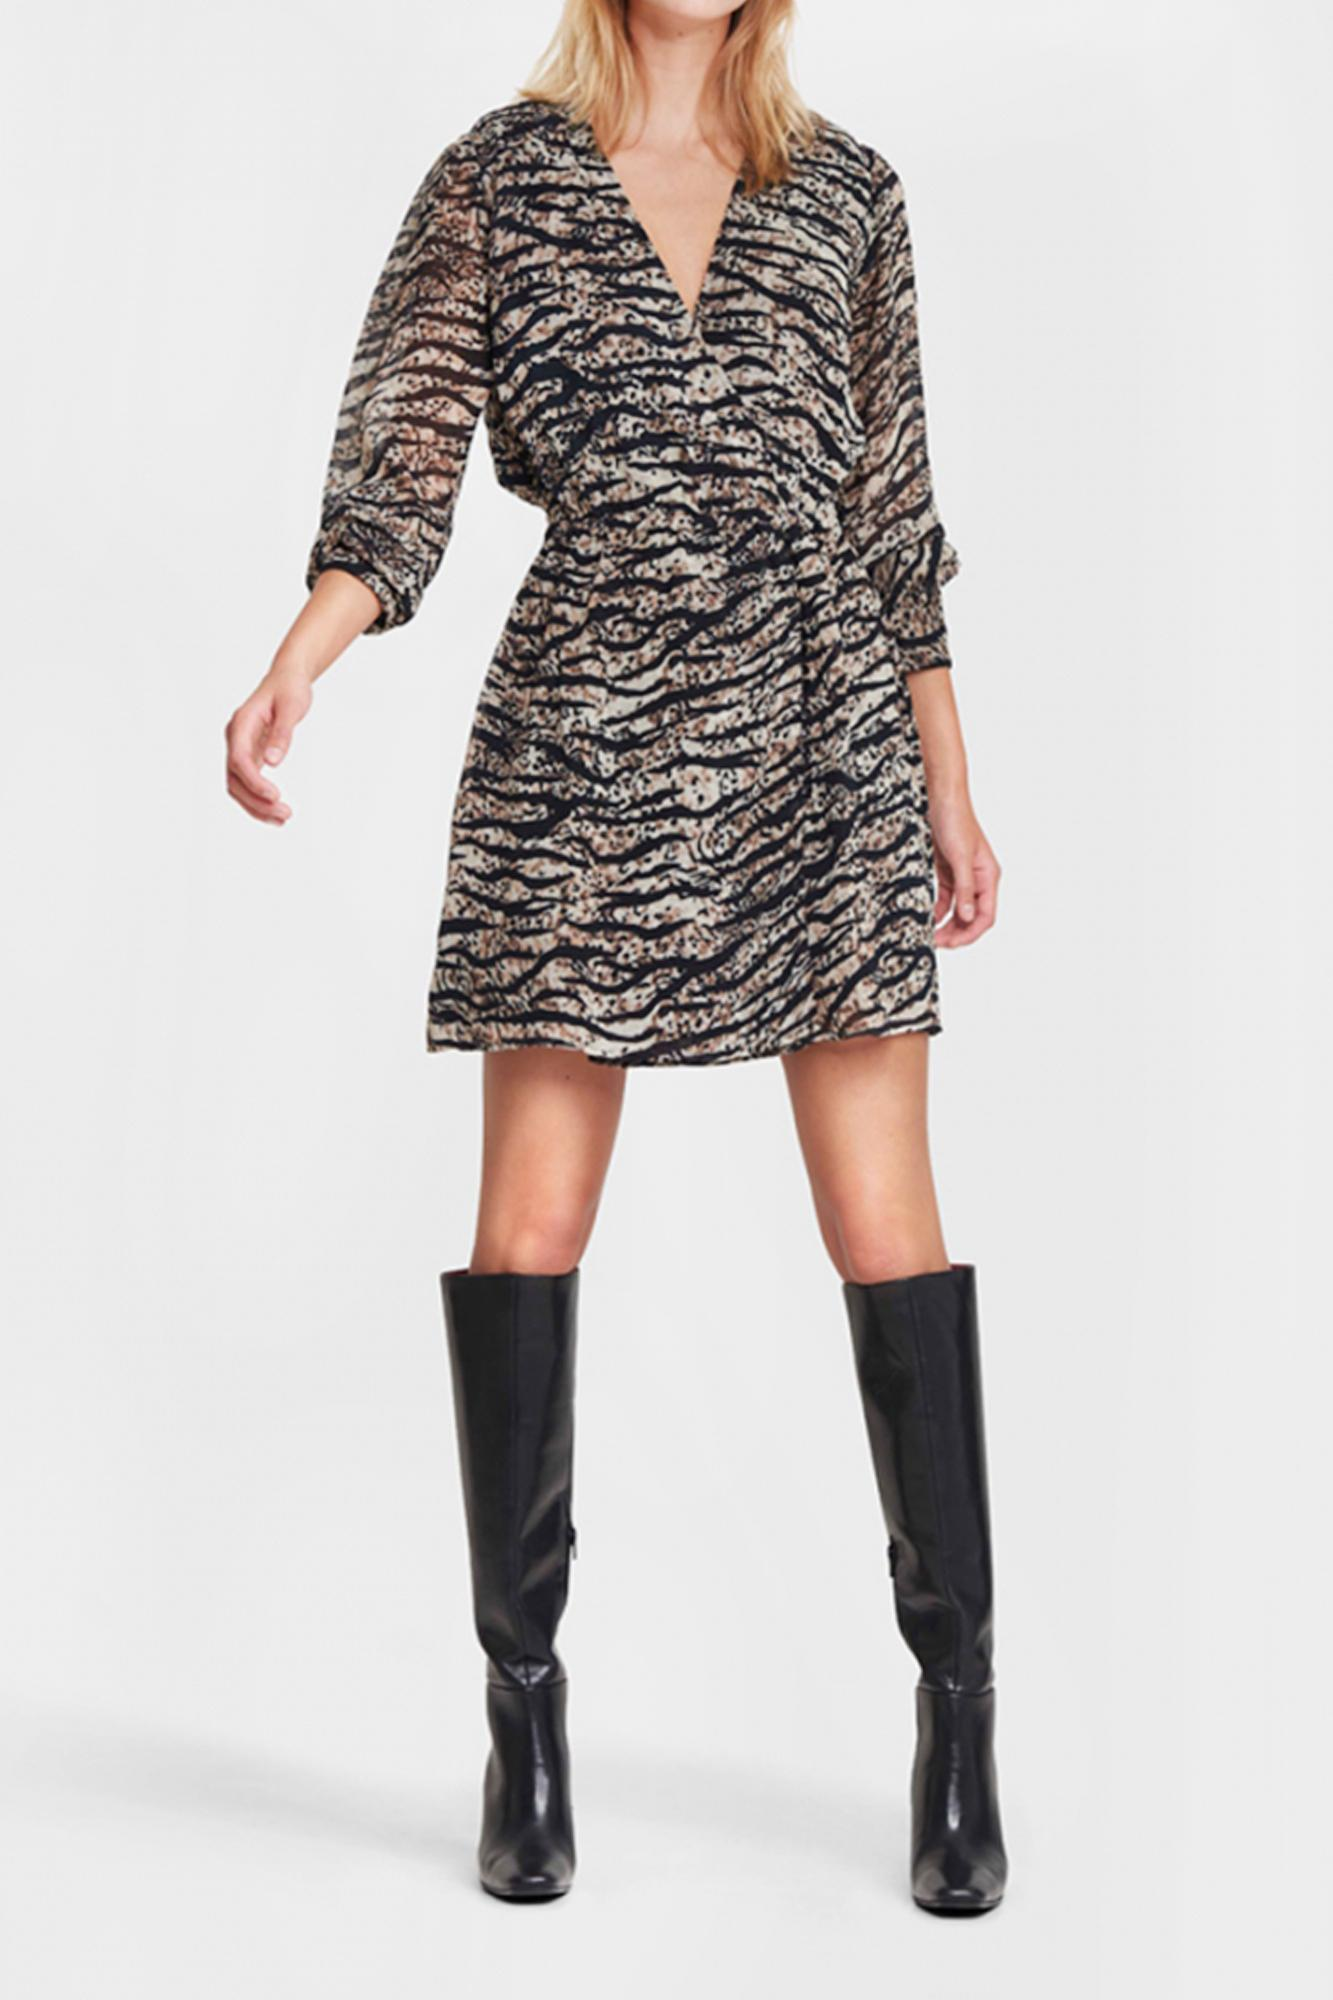 Zebre dress